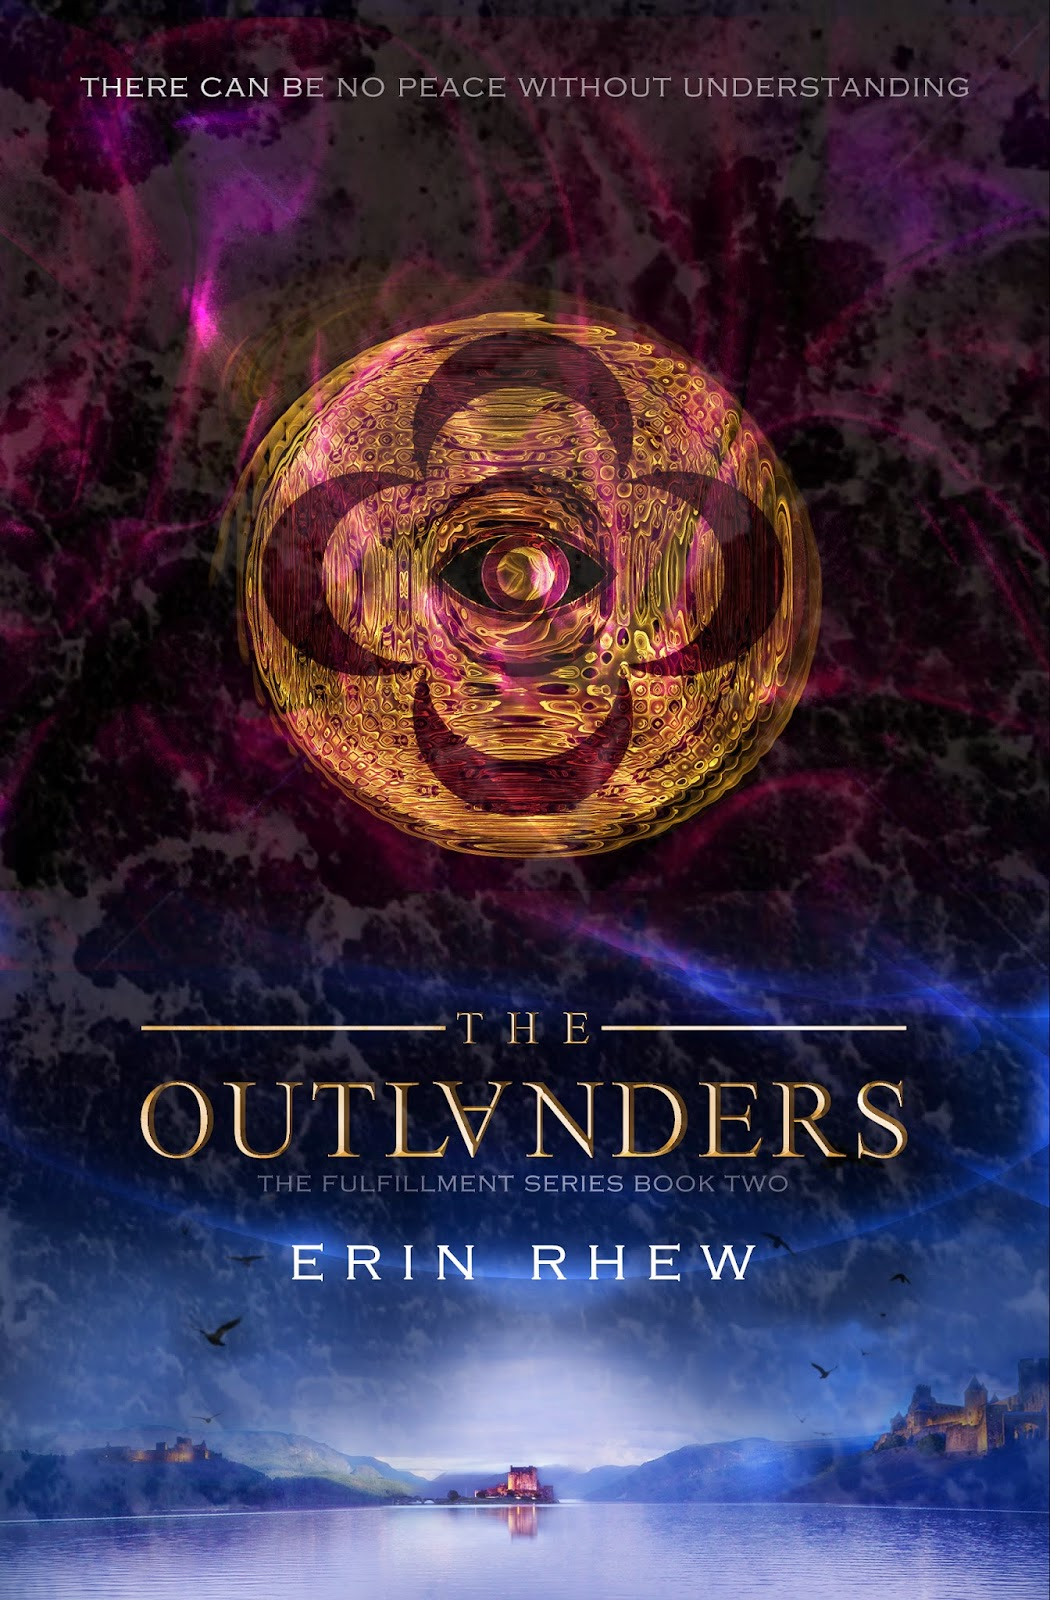 http://readsallthebooks.blogspot.com/2014/10/the-outlanders-review_20.html